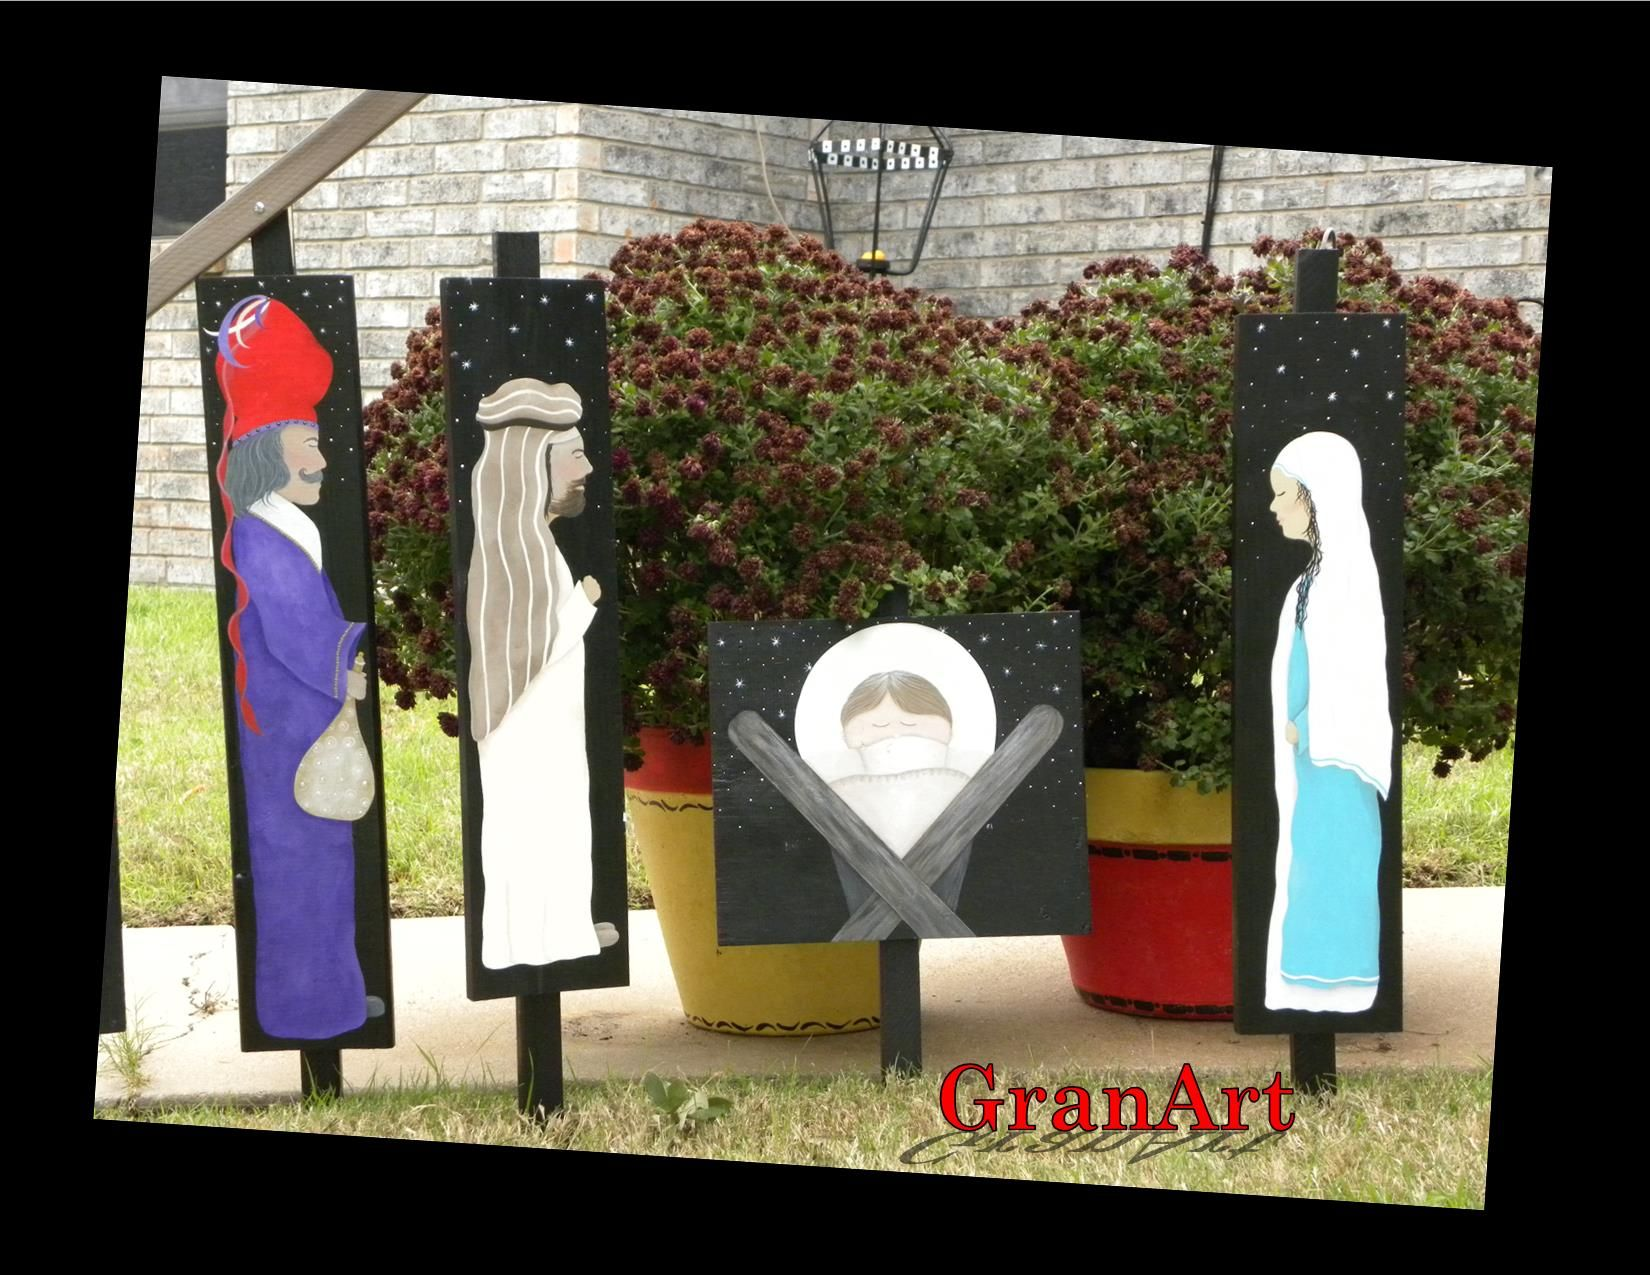 Nativity - painted on wood, using acrylics. Just a fun project! By GranArt